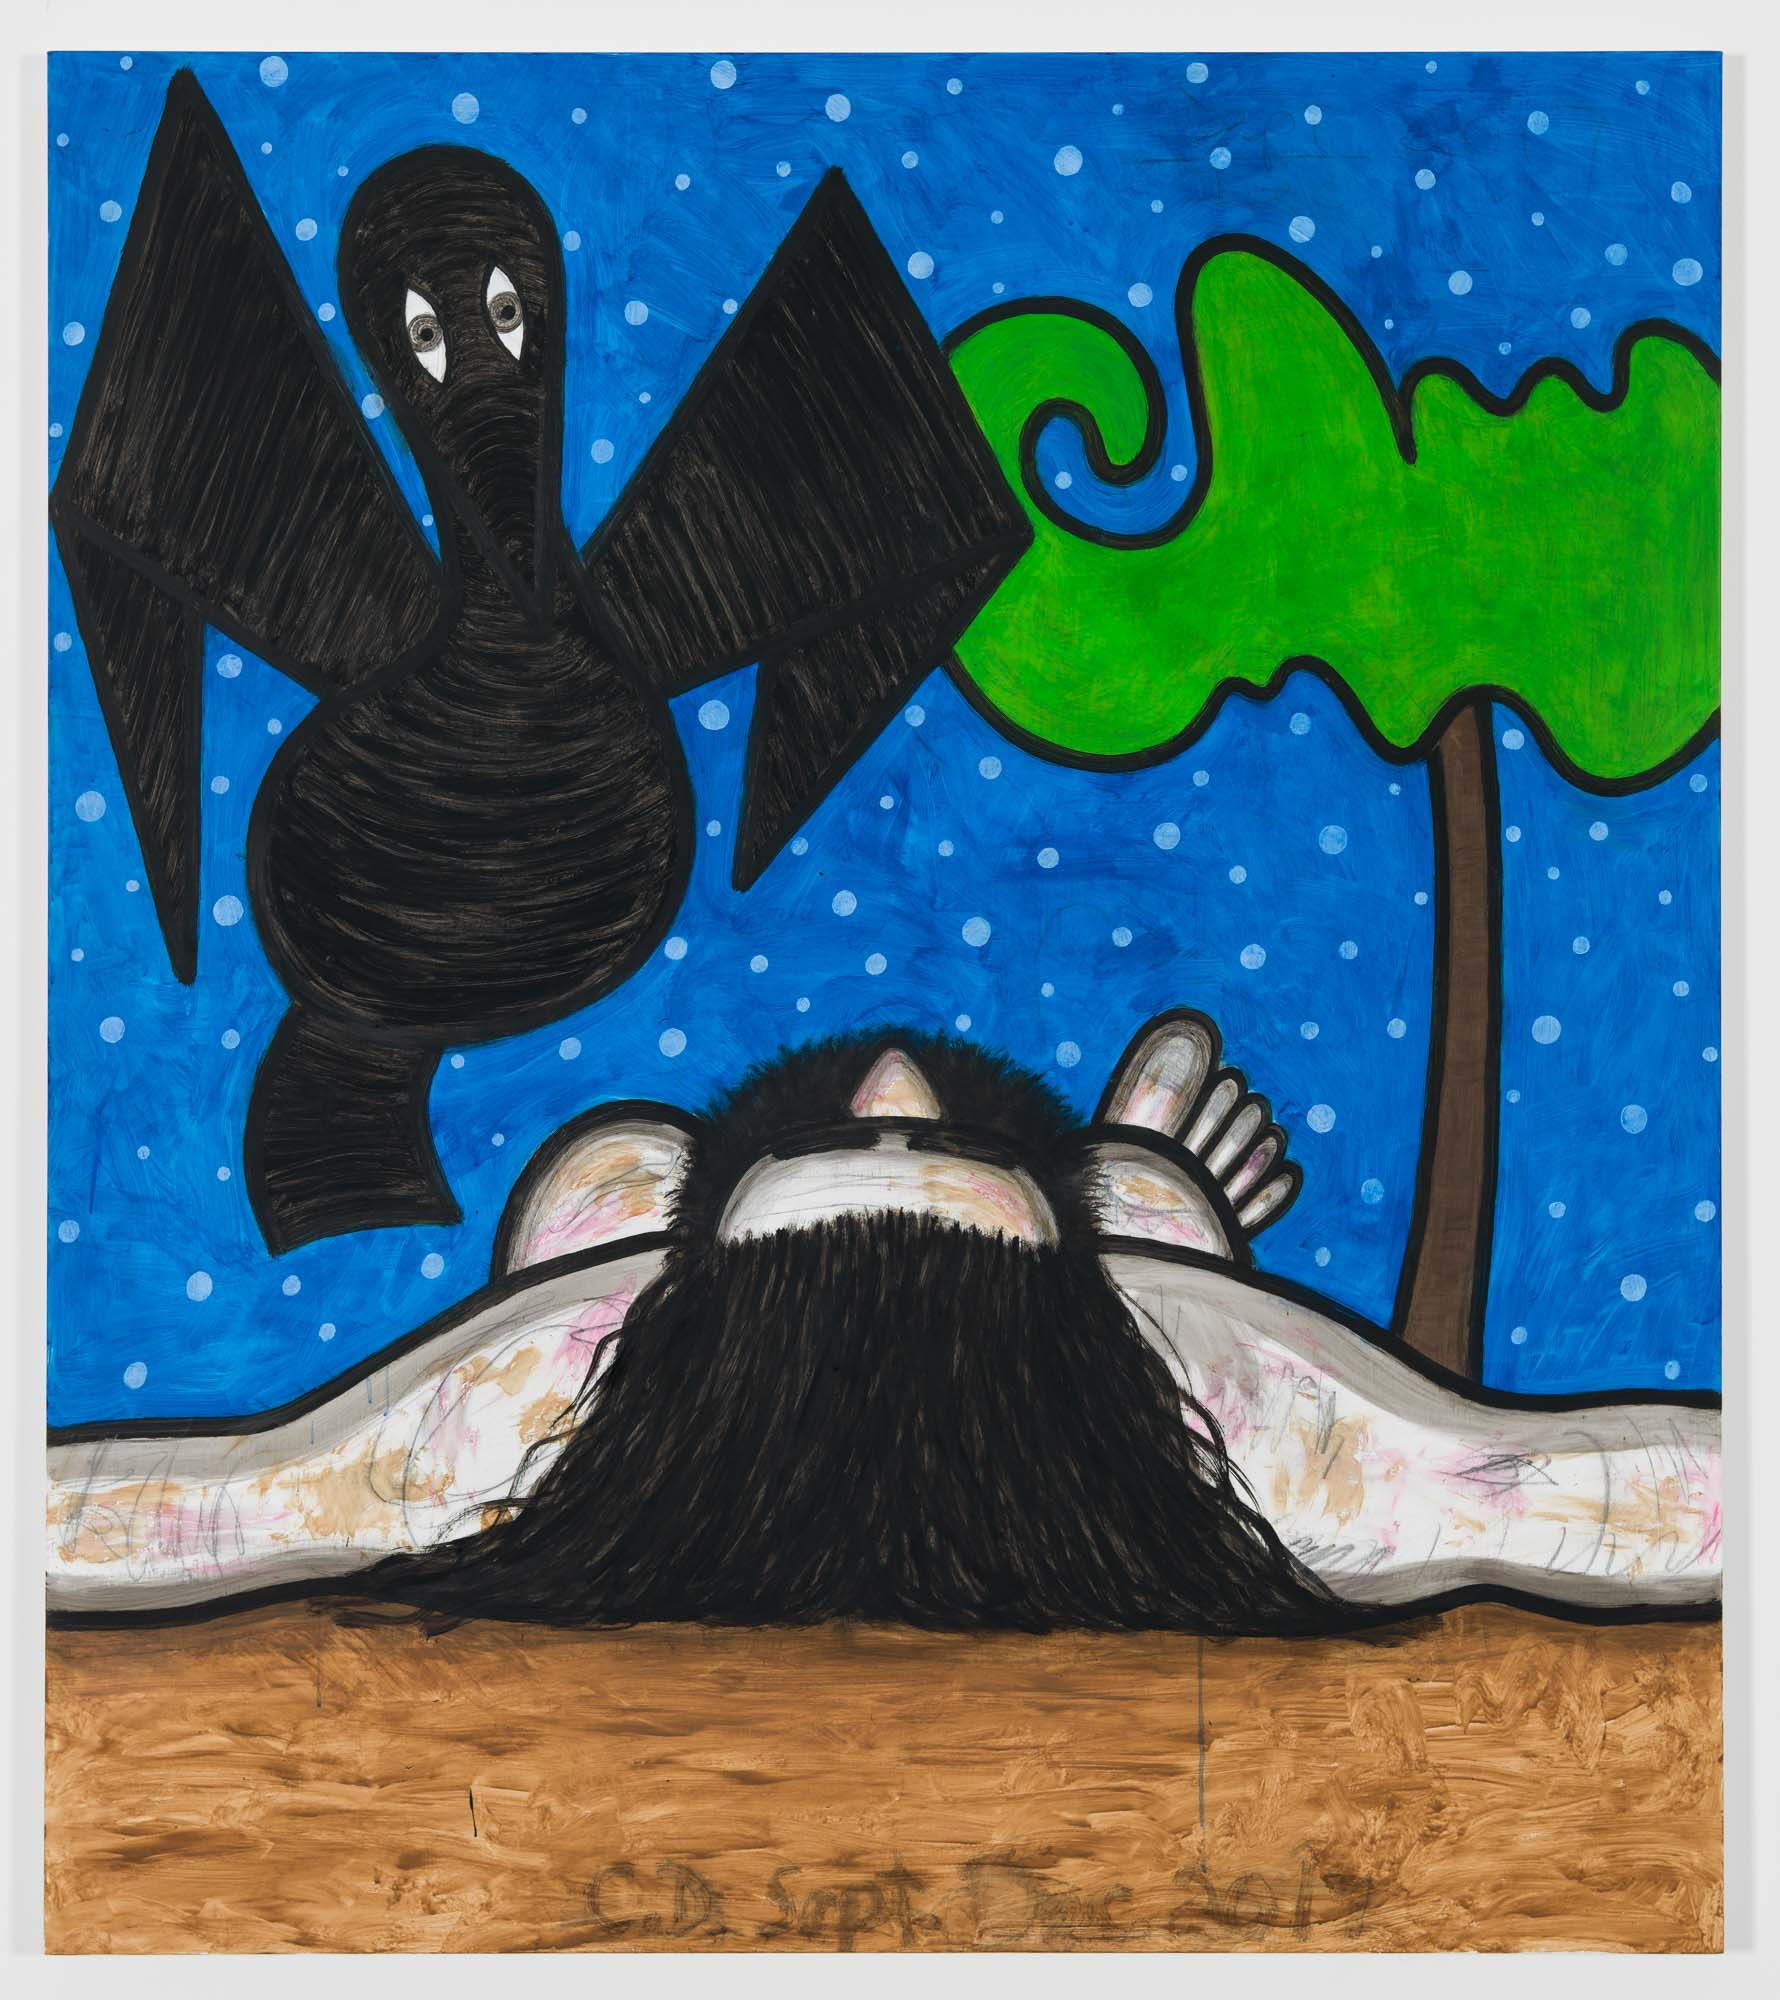 Carroll Dunham Left for Dead (2), 2017. © Carroll Dunham. Courtesy the artist and Gladstone Gallery, New York and Brussels